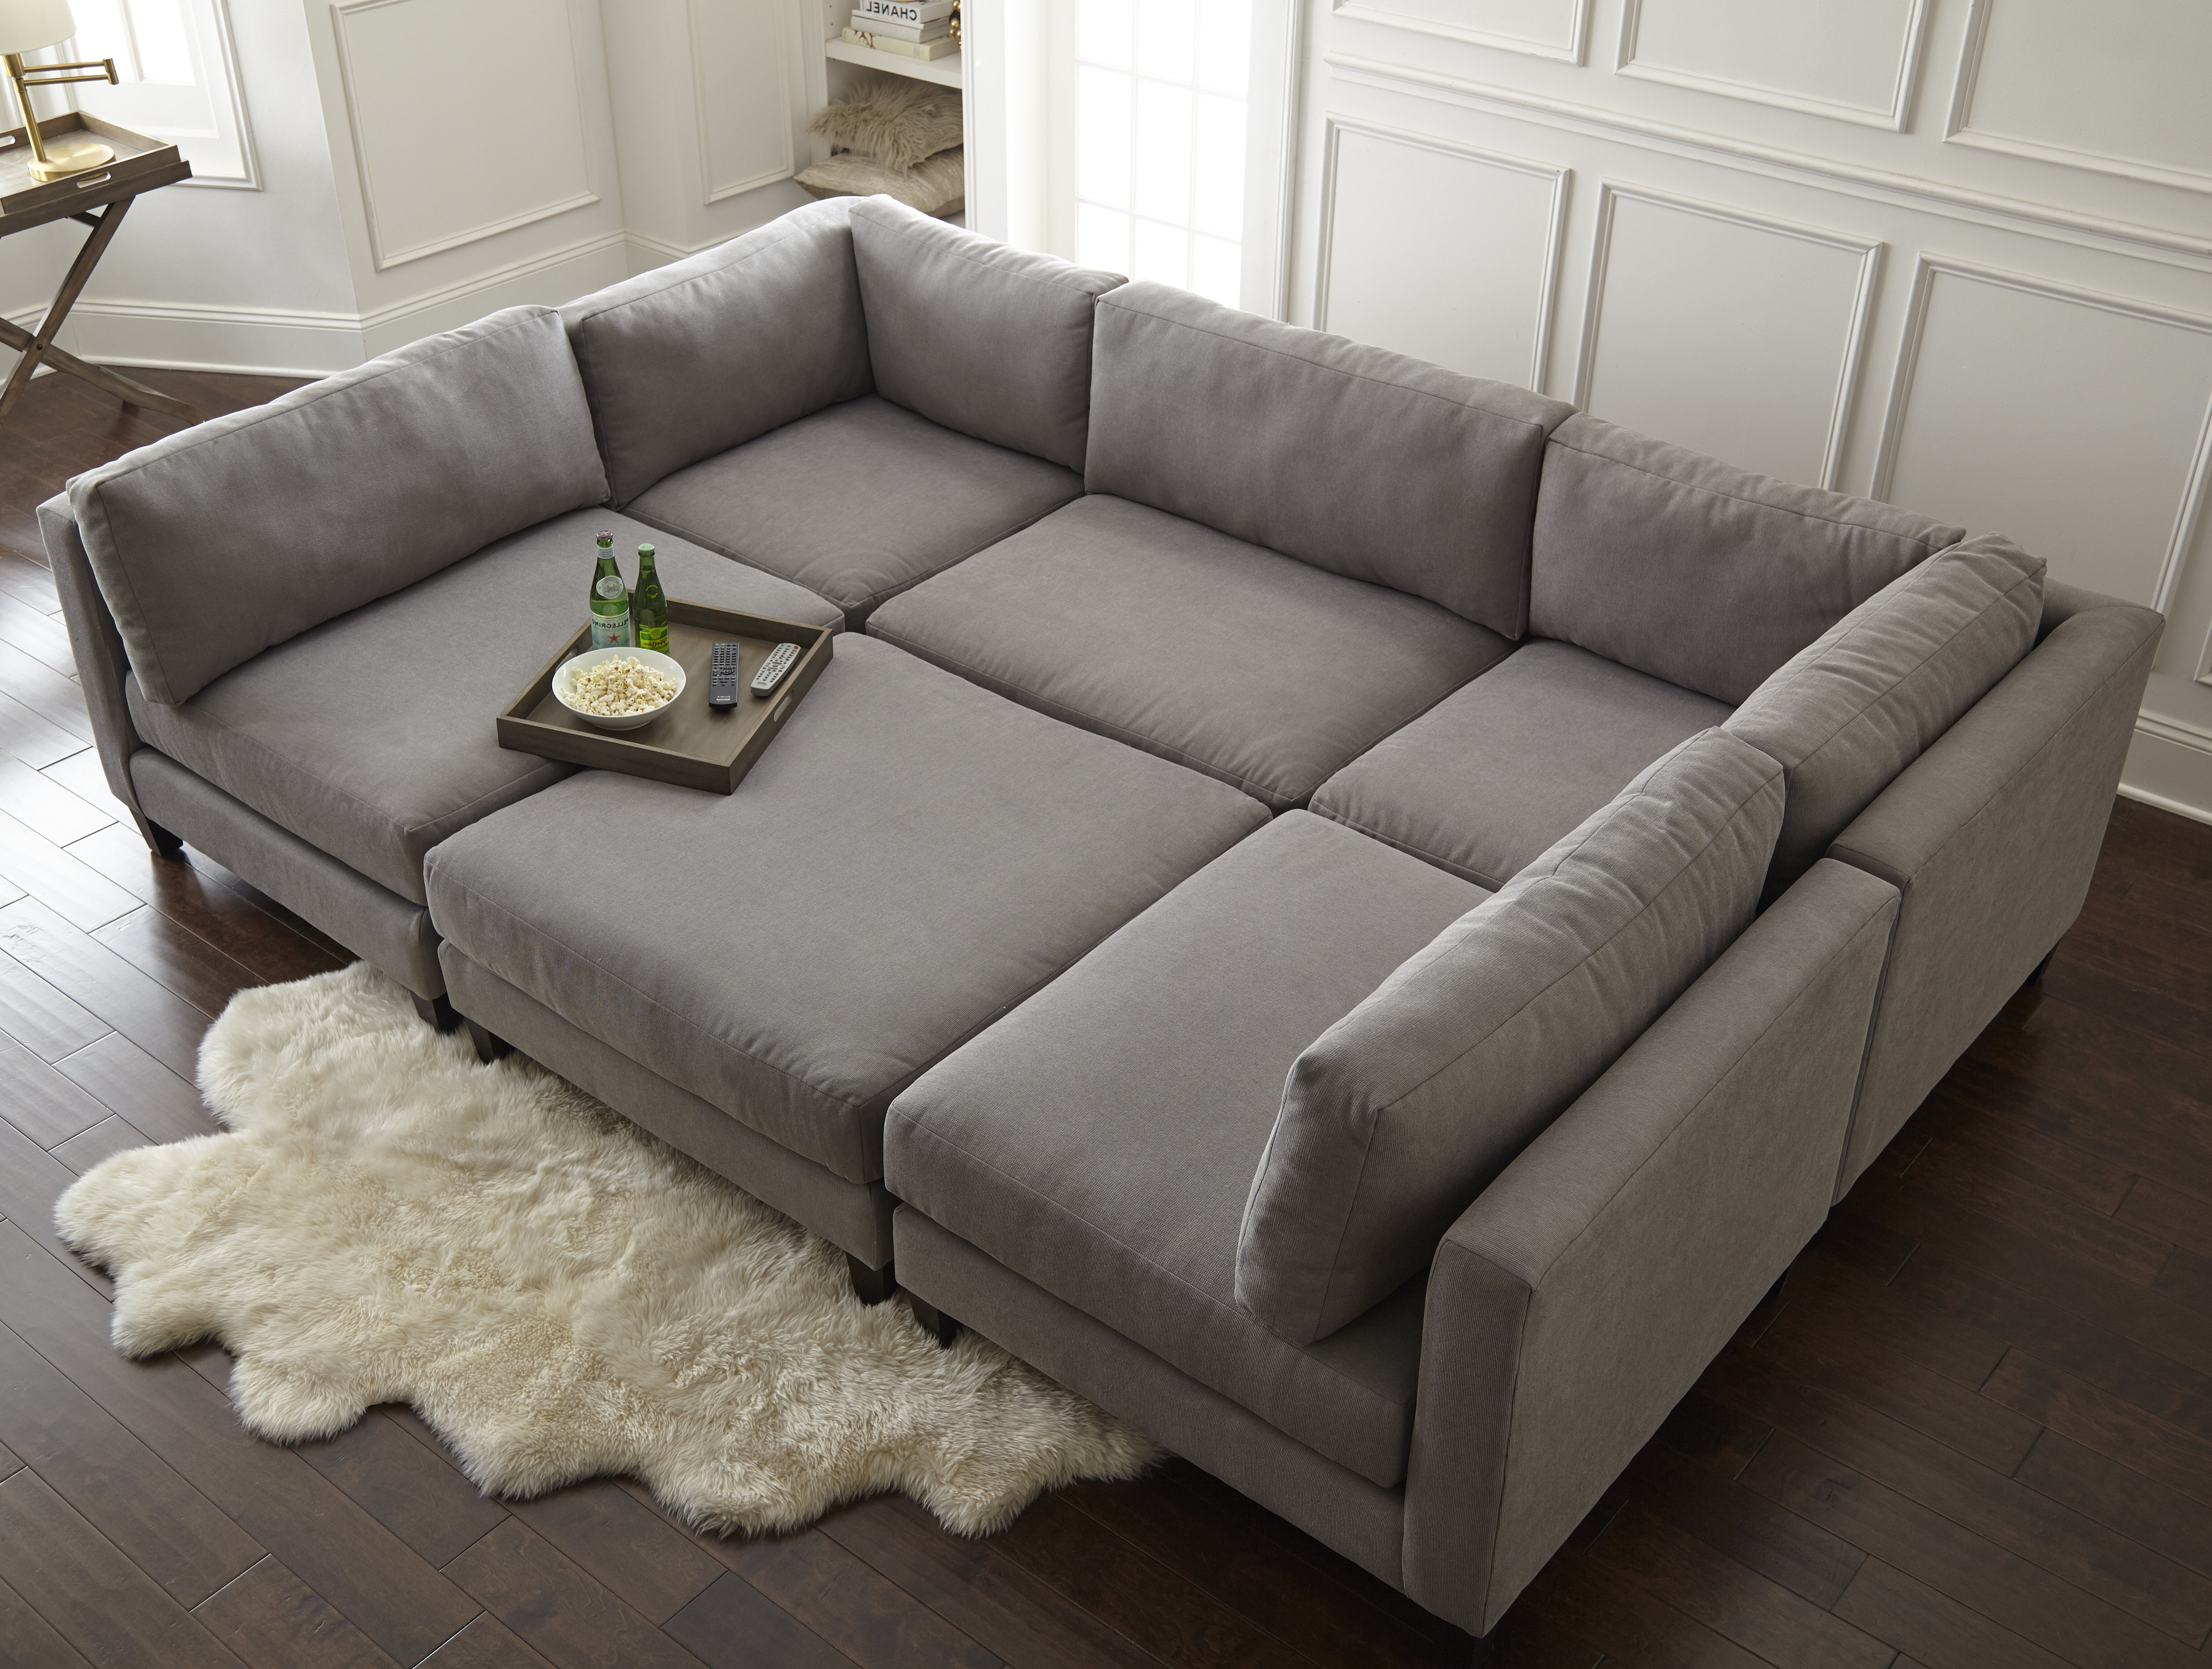 Wayfair Inside Widely Used Oversized Sectional Sofas (View 6 of 15)